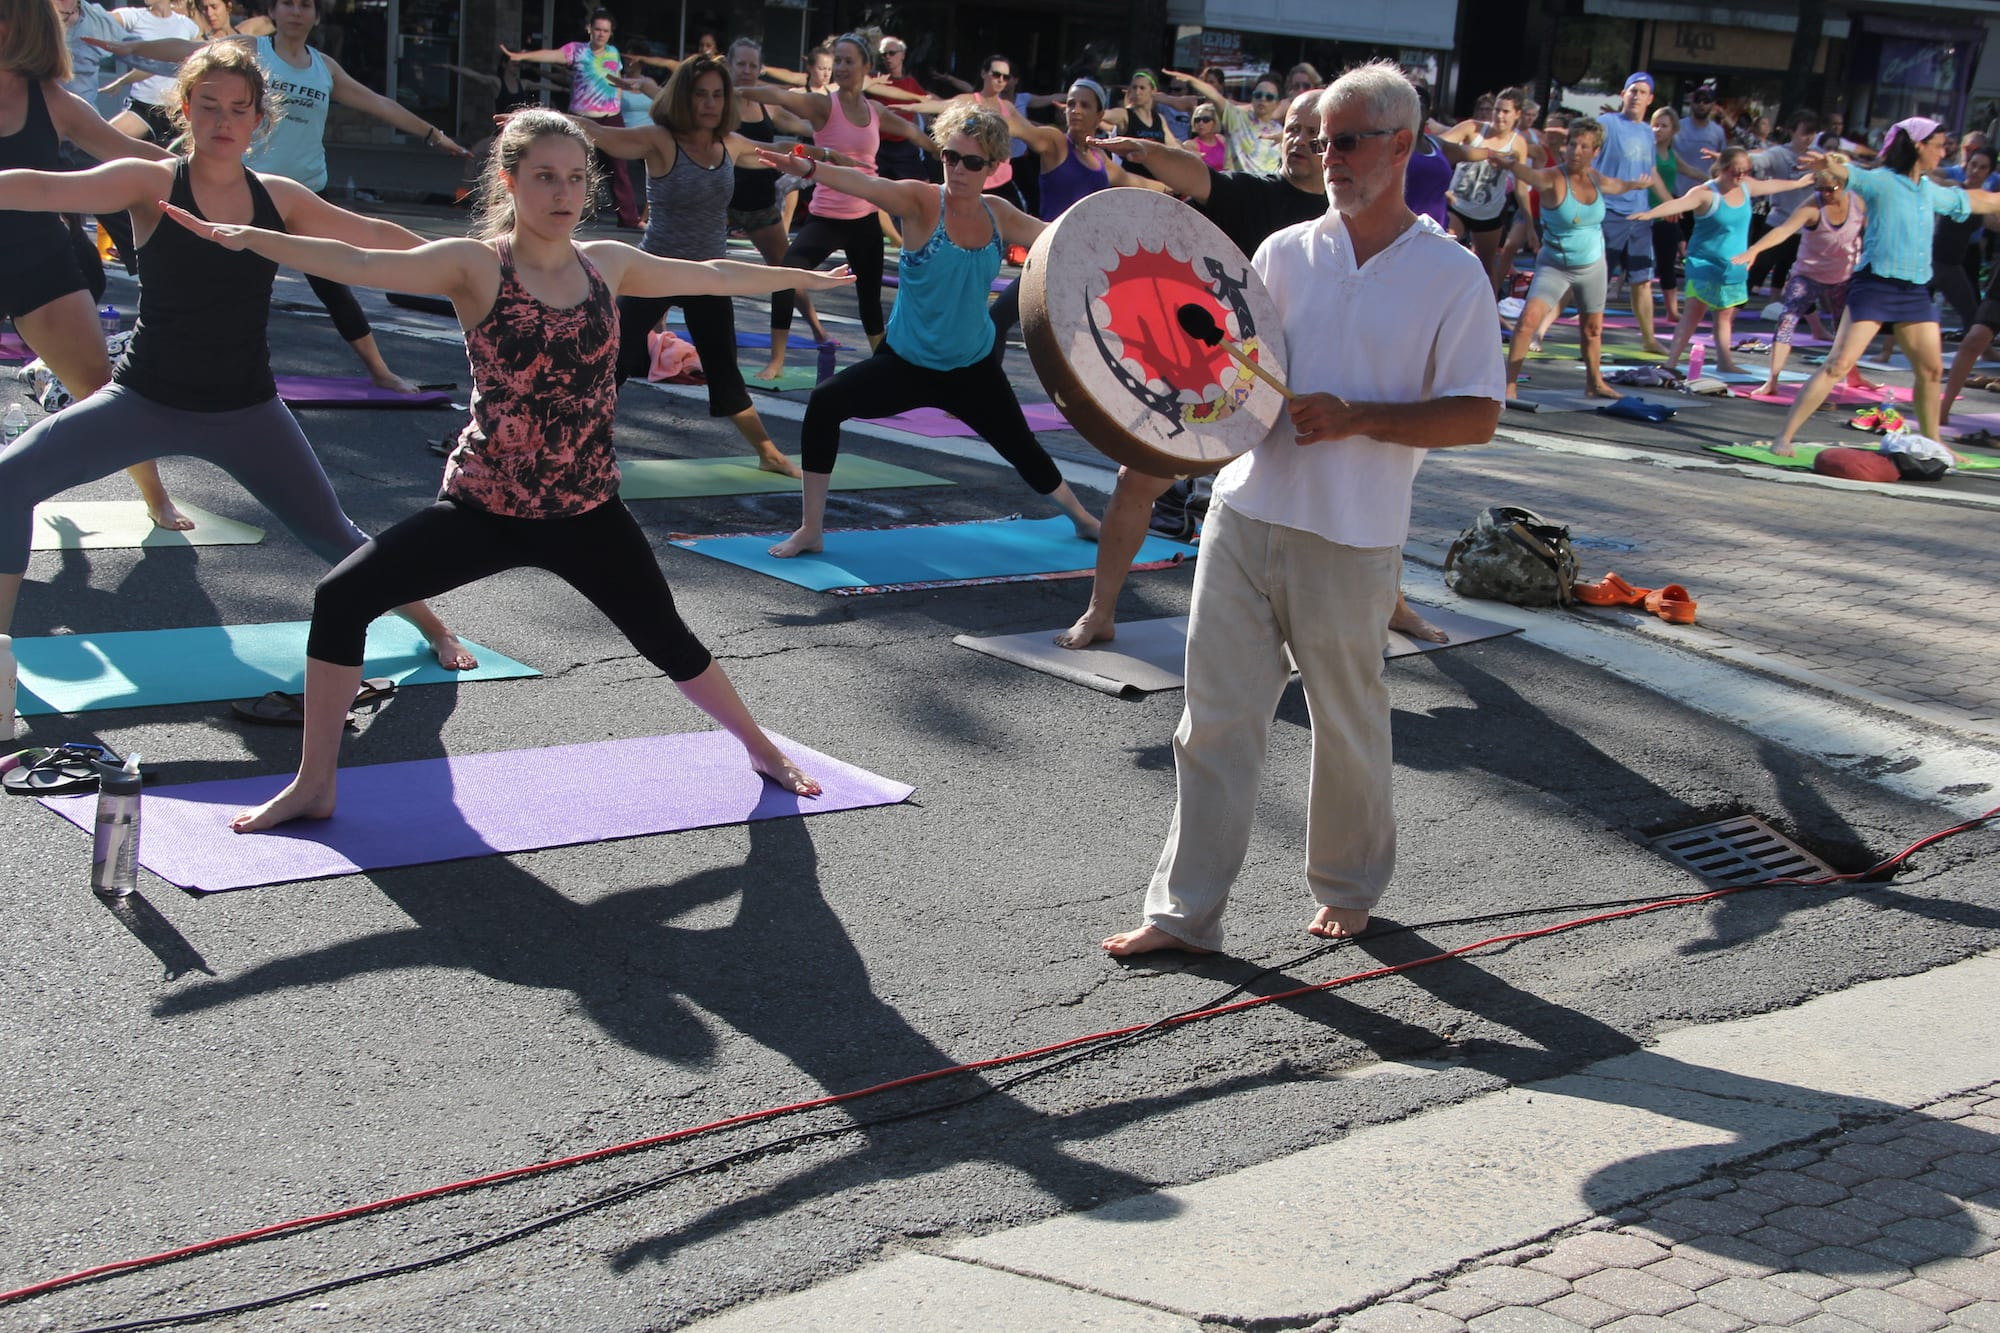 Om Street 2015, presented by West Hartford Yoga on LaSalle Road, July 25, 2015. Craig Norton, with Hands on Drumming, strolled and drummed. Photo by Amy Melvin